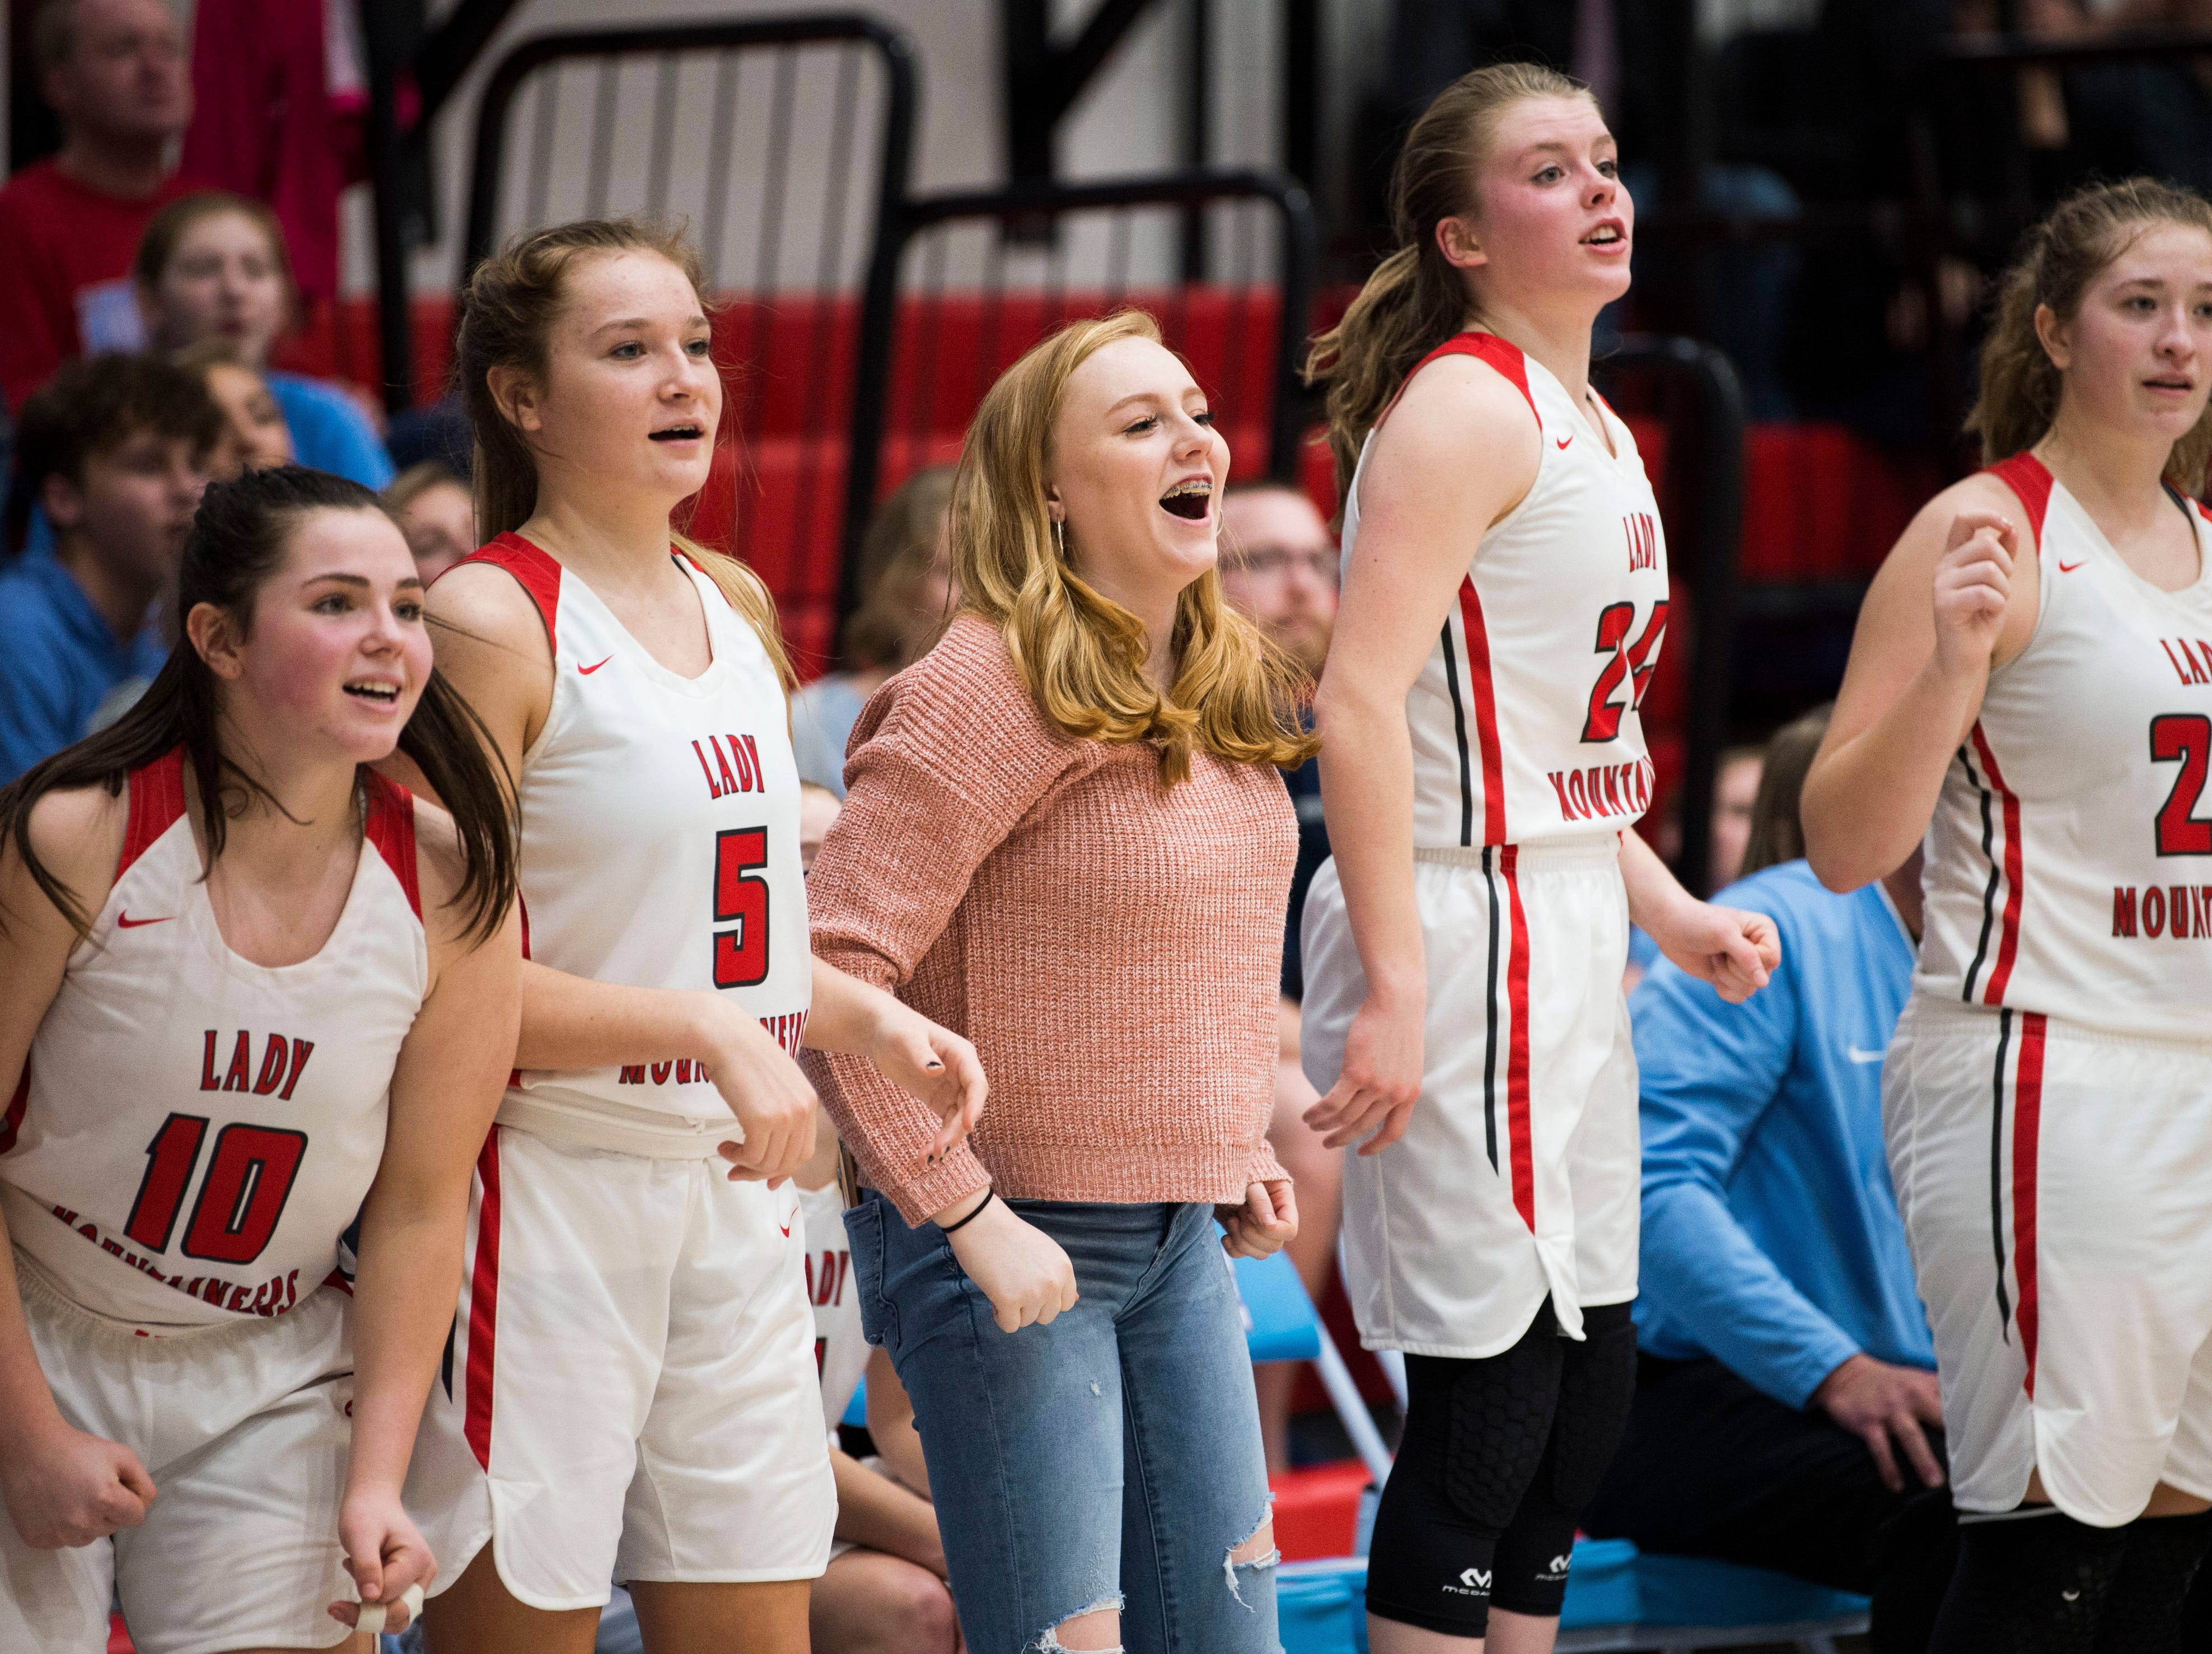 Heritage players cheer from the bench during a high school basketball game between Maryville and Heritage at Heritage Friday, Jan. 4, 2019. Both Maryville boys and girls teams beat Heritage.